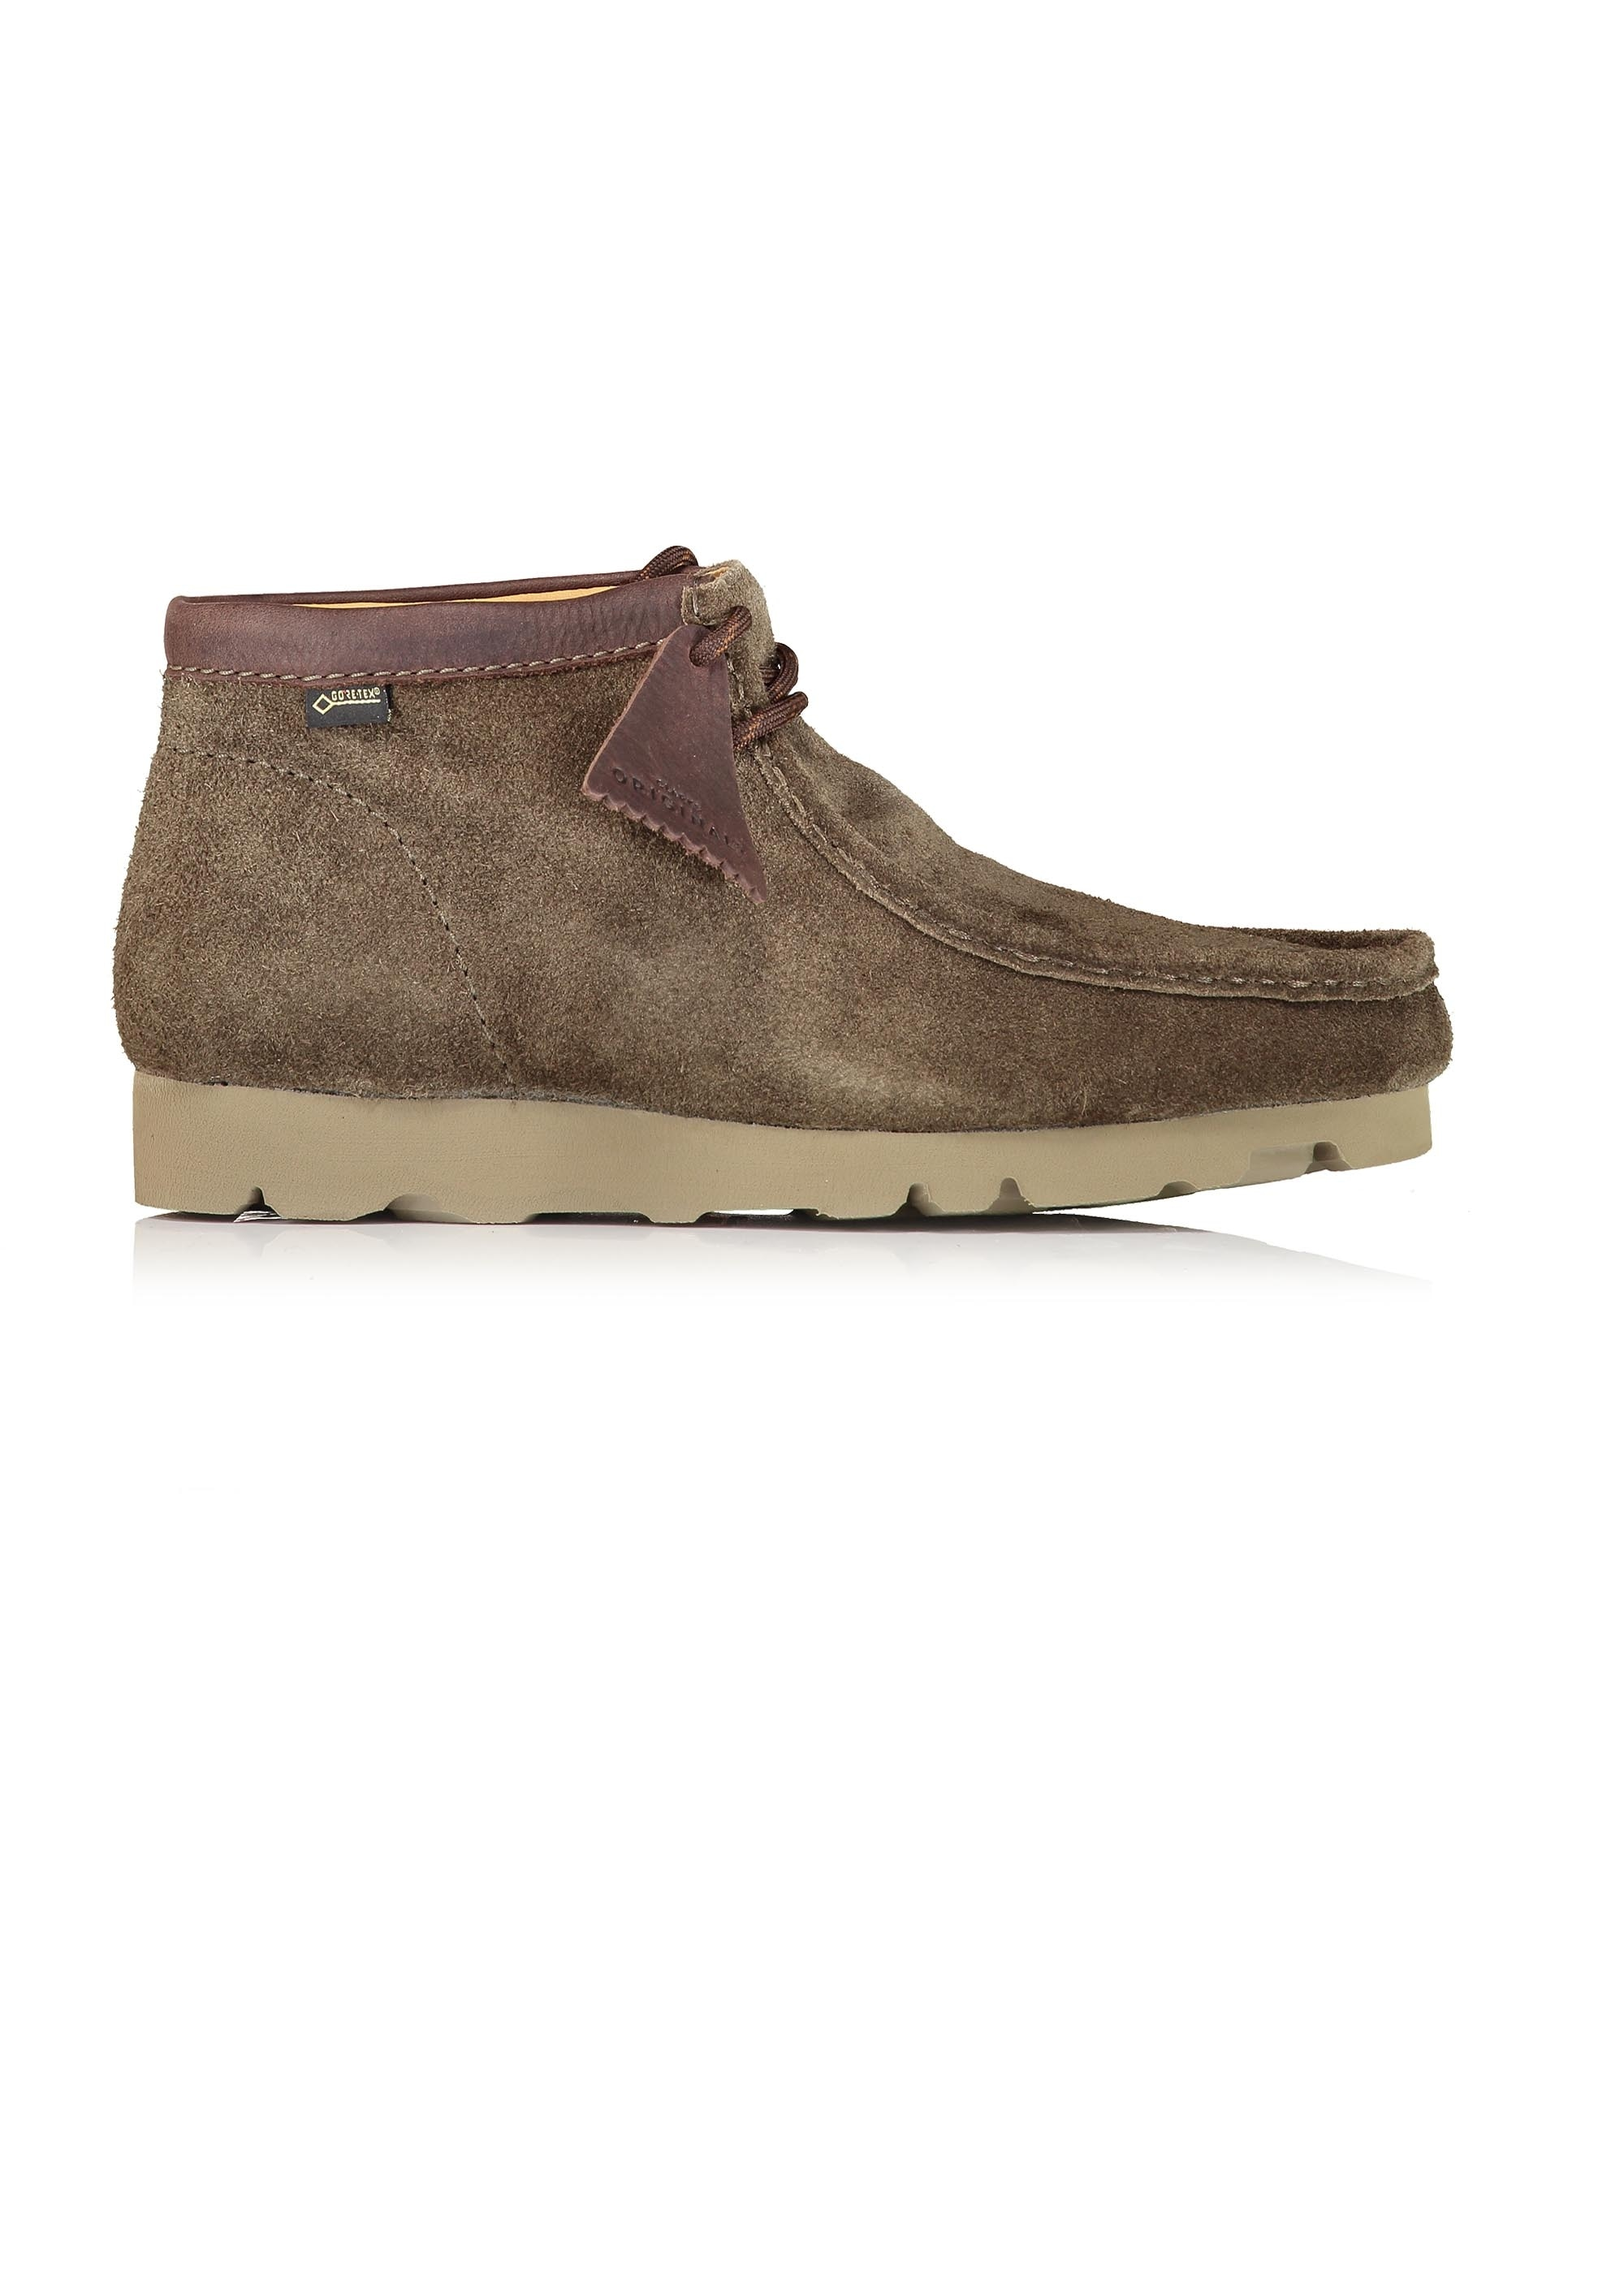 Clarks Originals Wallabee Boot GORE TEX